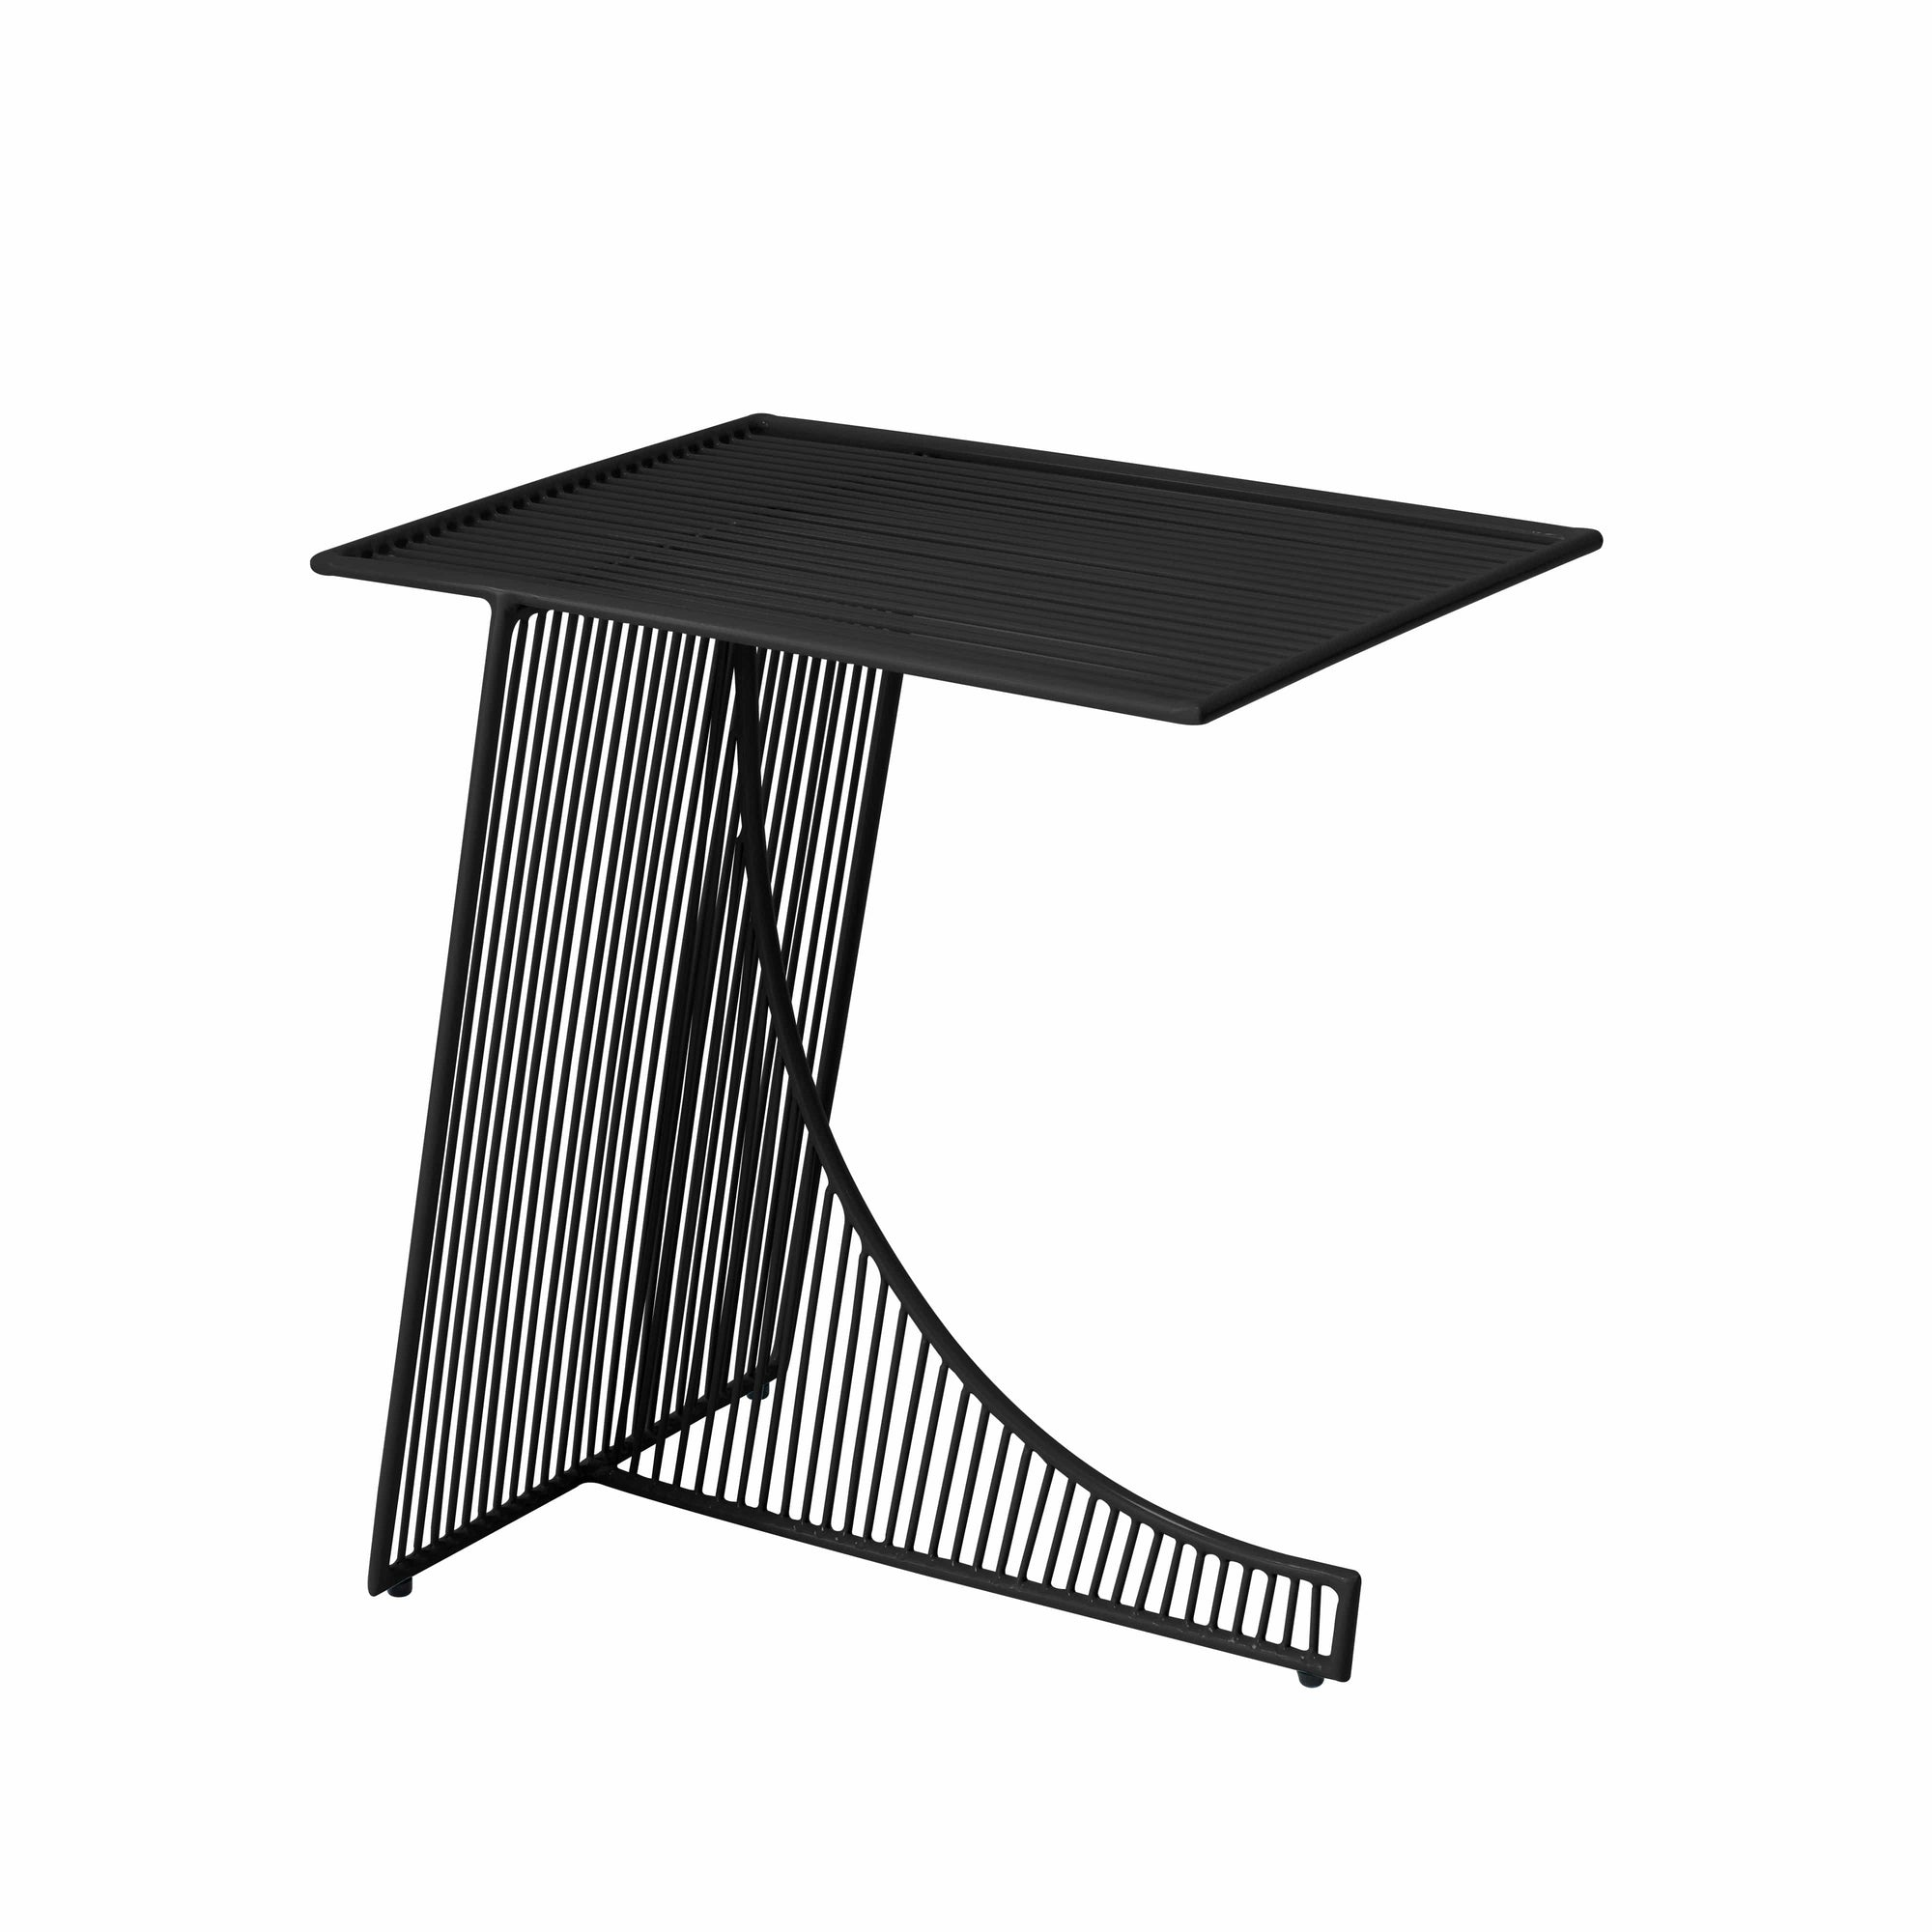 Bend Goods Furniture Black Eclipse Table